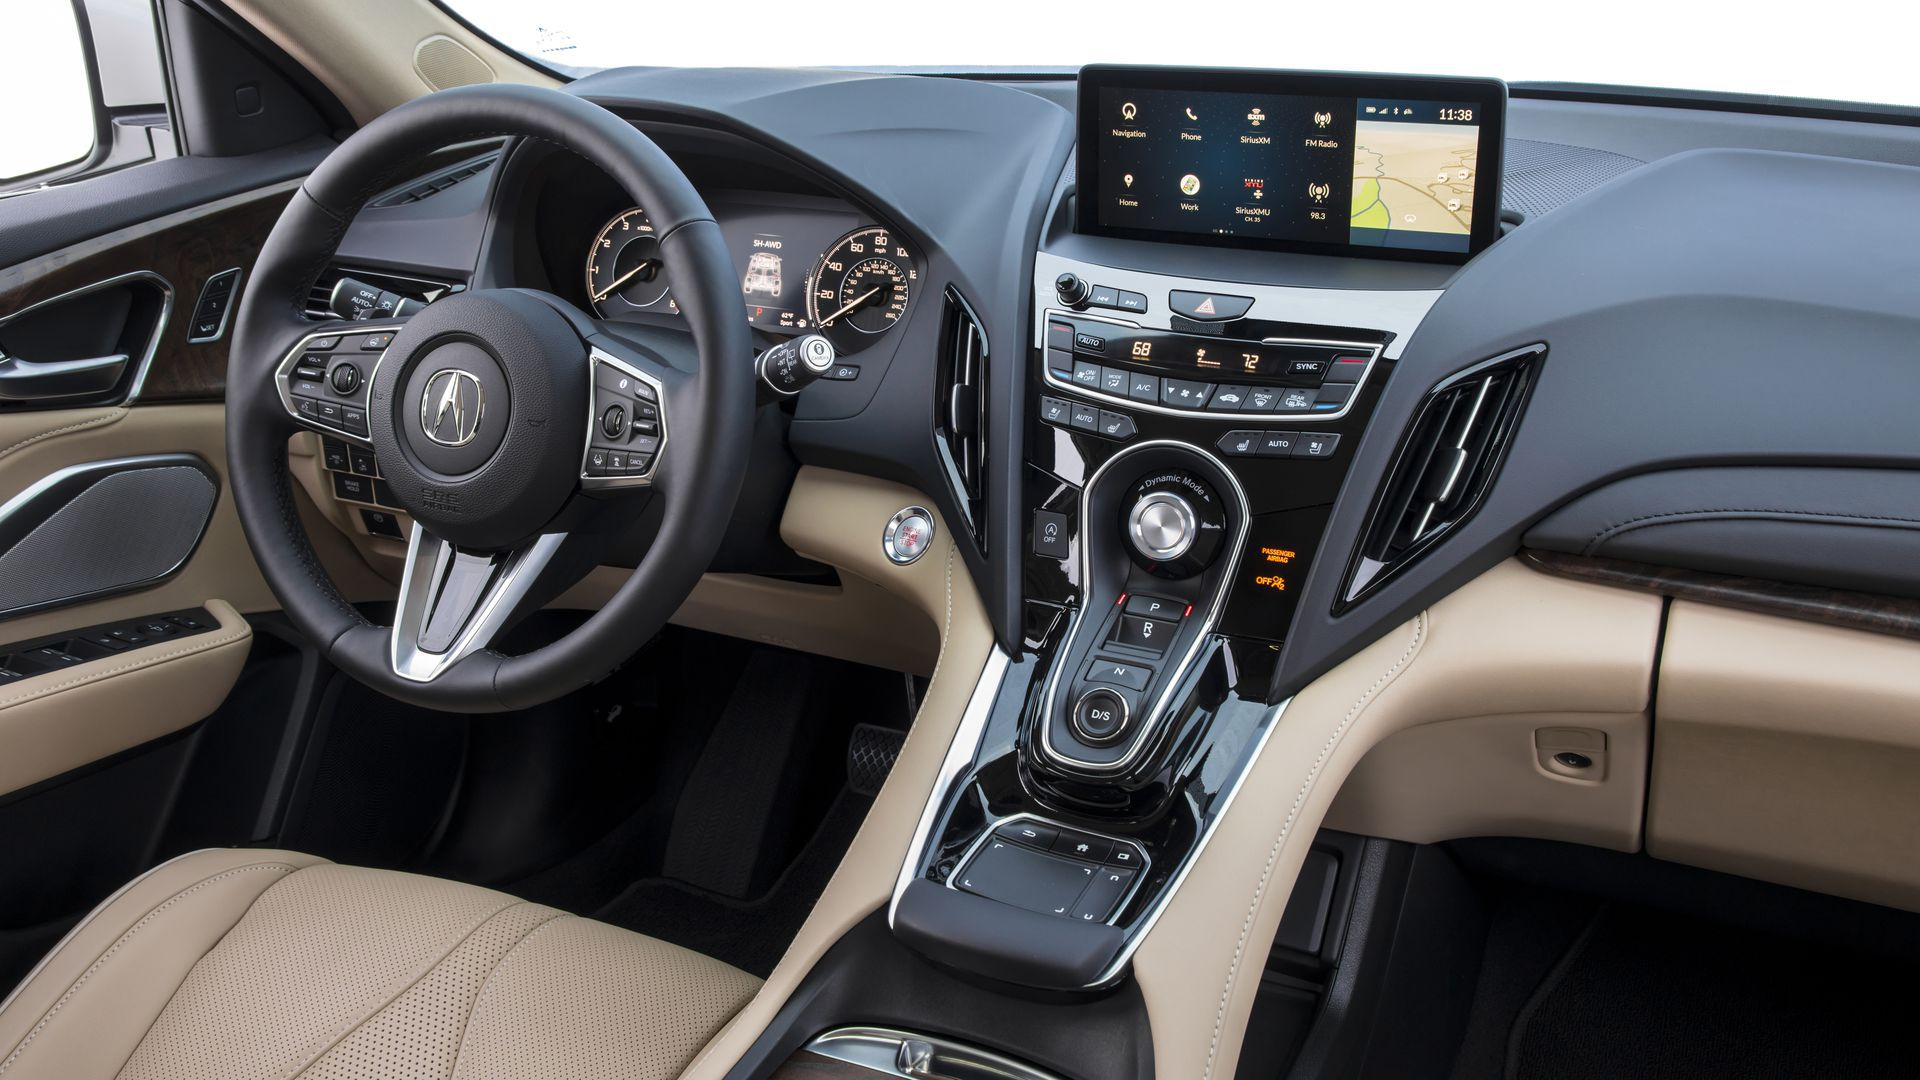 Acura RDX's True Touchpad controls the high-mounted infotainment screen.